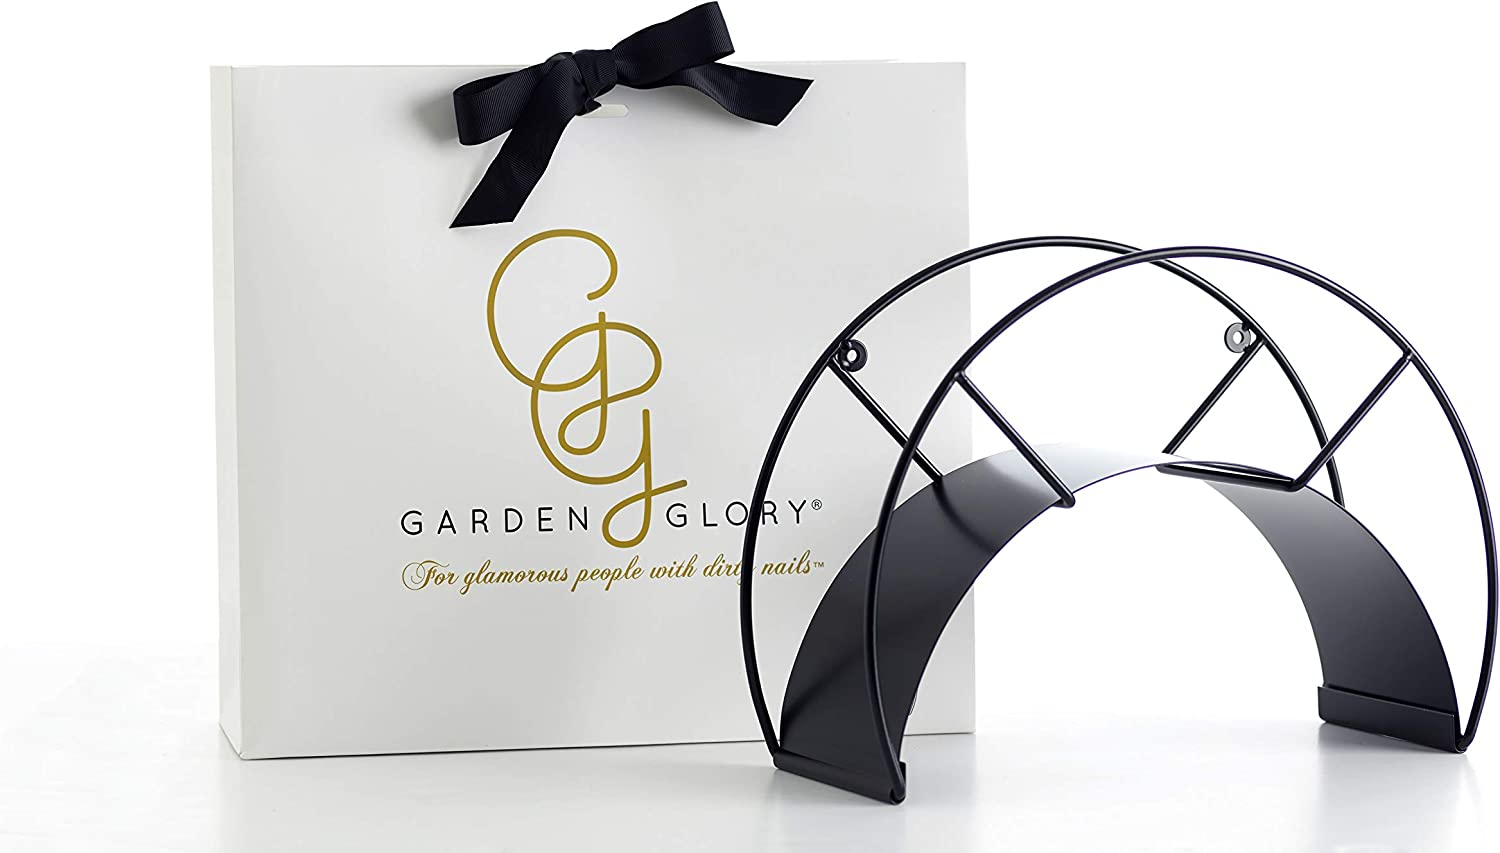 Black Garden Hose Holder - Black Swan - Premium Design Wall Mounted Water Hose Hanger - The Most Stylish Hose Storage You Can Find (Carry up to 130feet Hose)